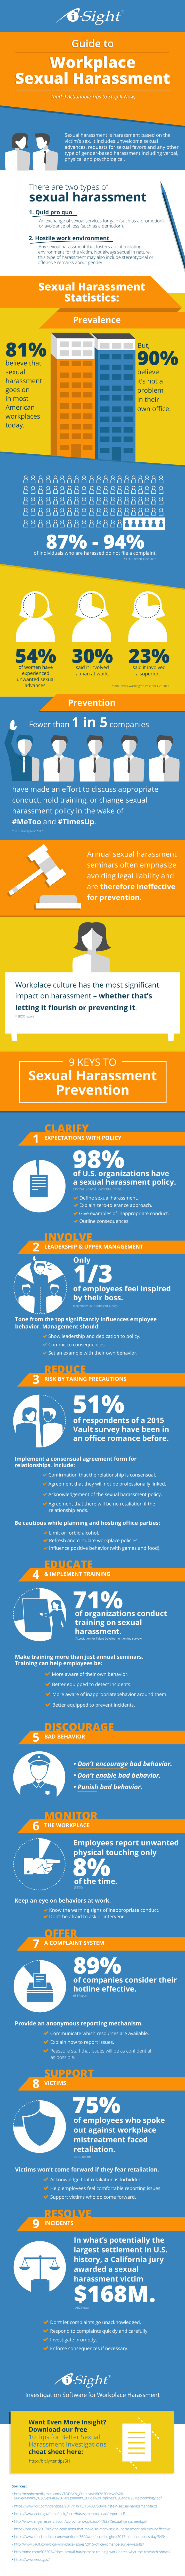 Workplace Sexual Harassment Infographic